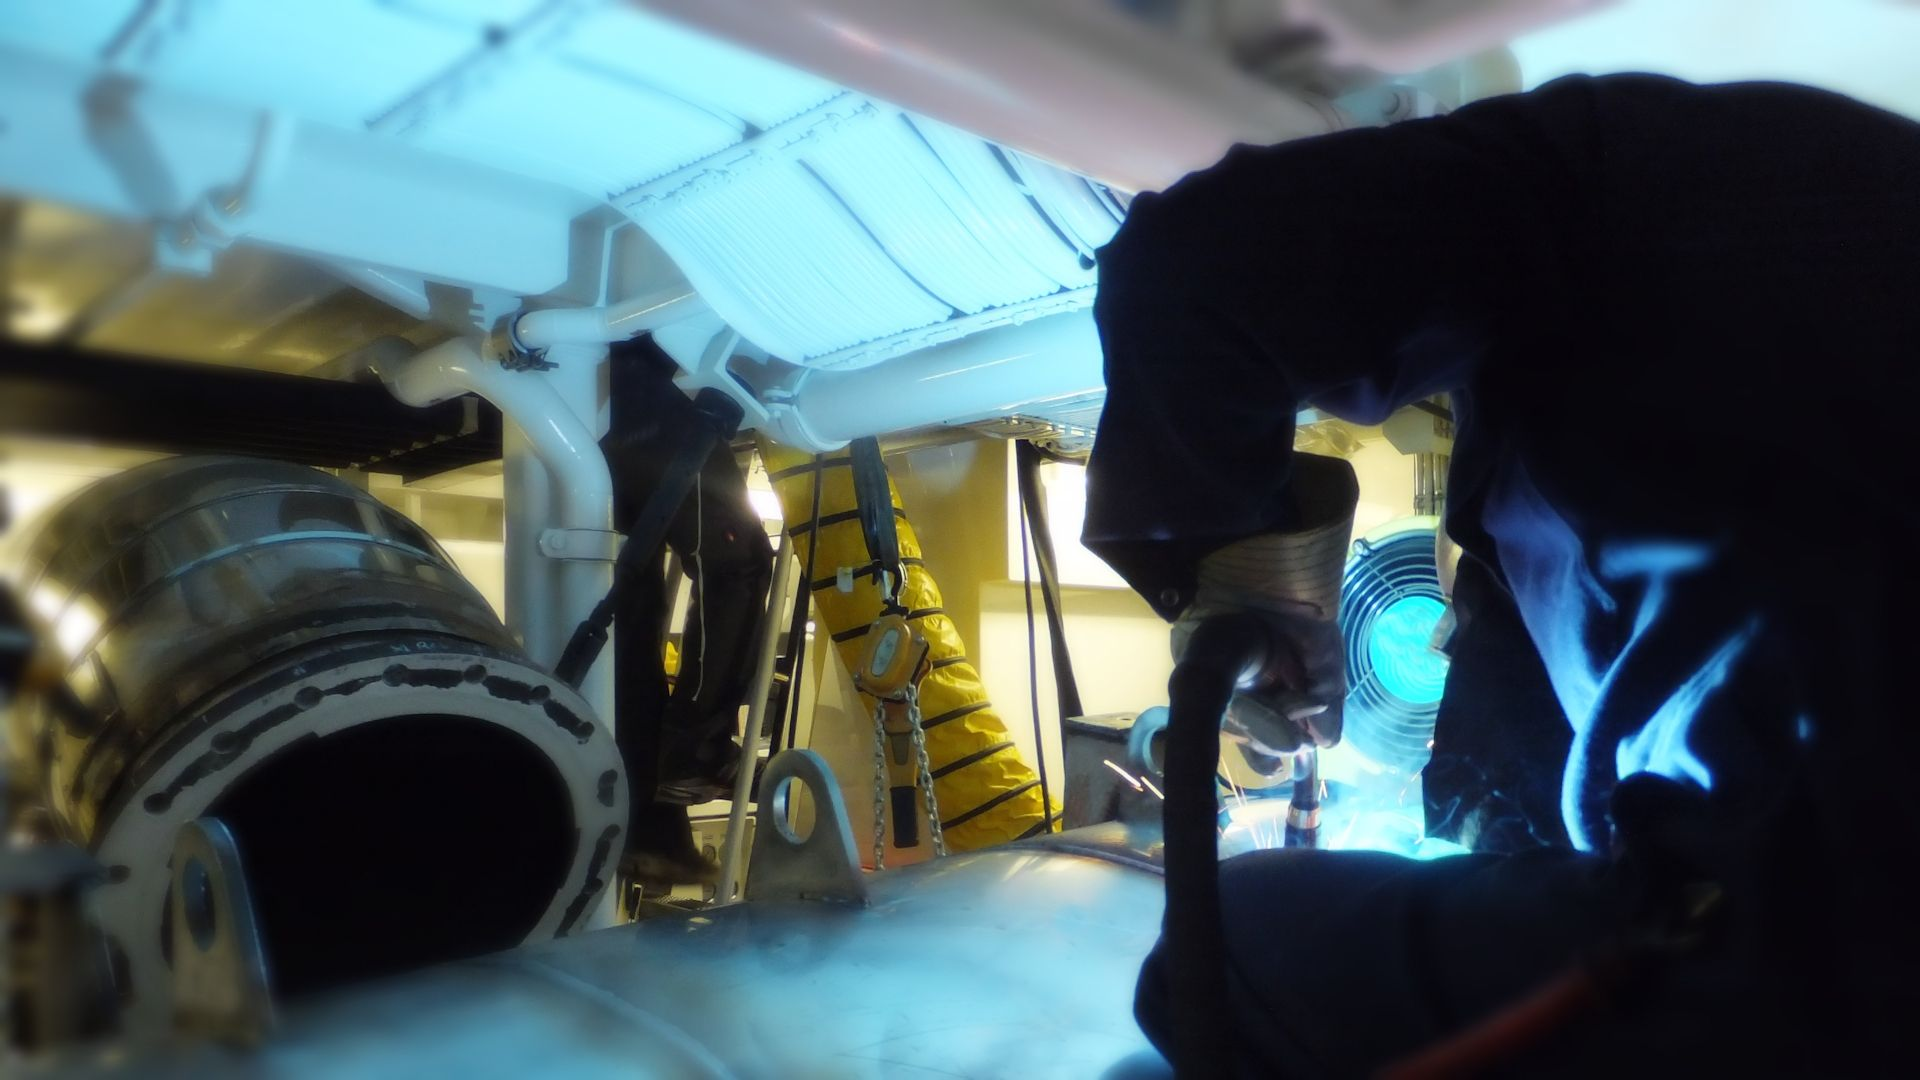 TIO yacht exhaust systems - on board refit welding in the USA